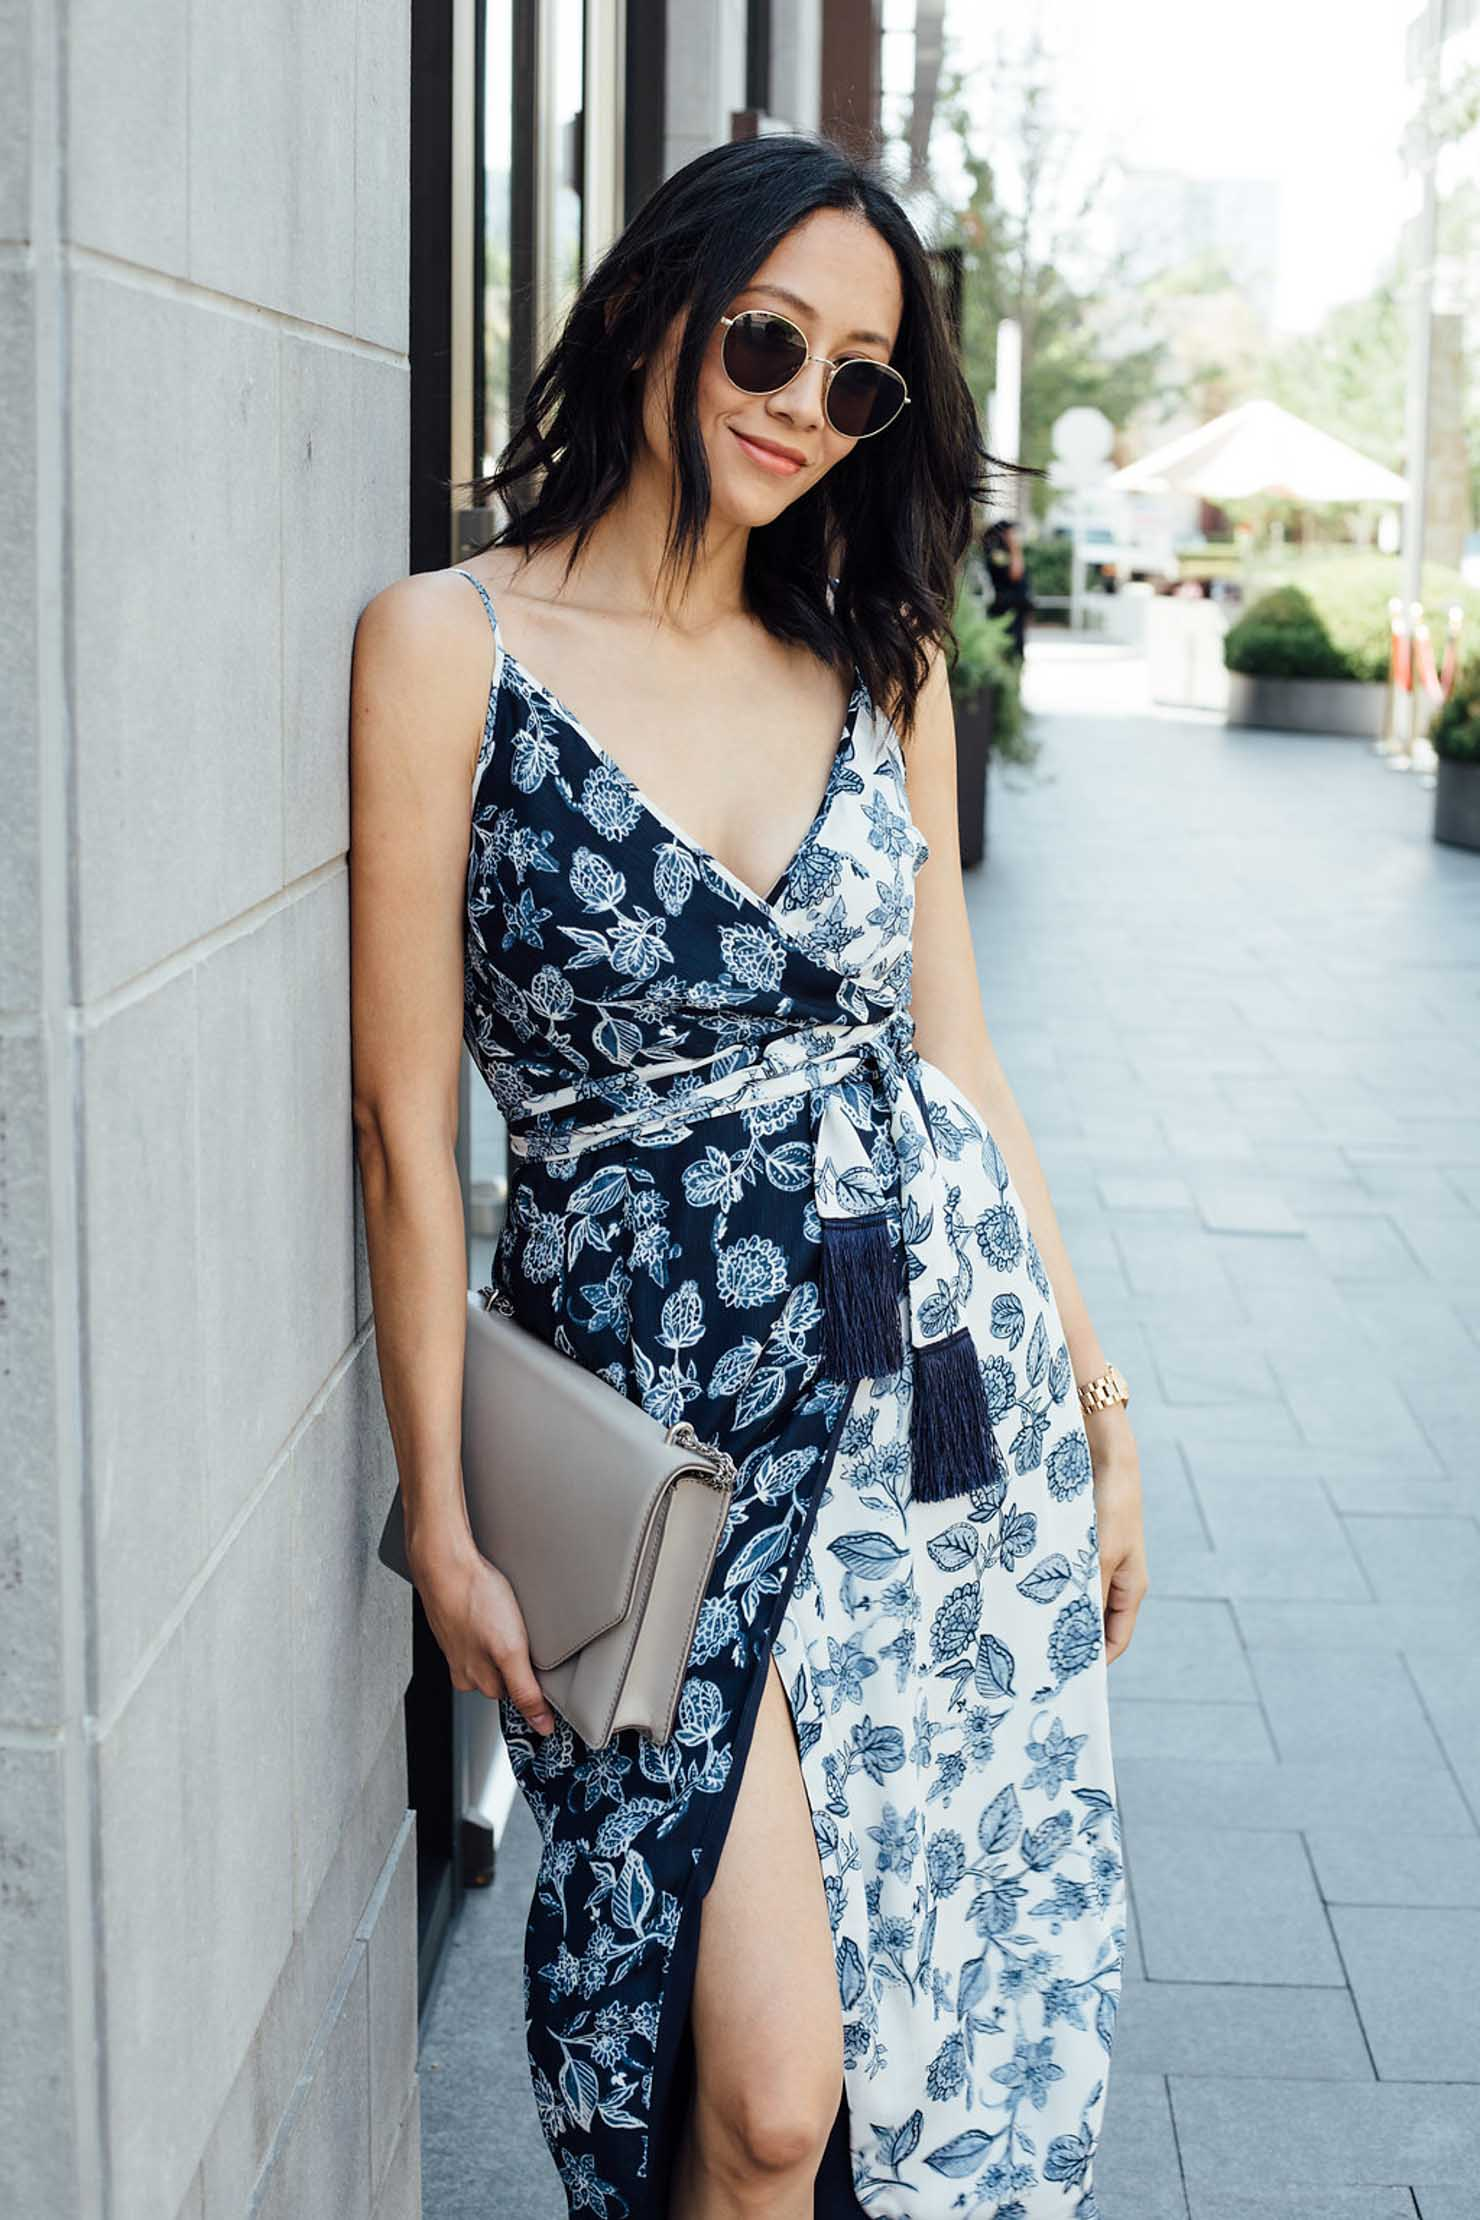 Style blogger Lilly Beltran of Daily Craving blog wearing a chic fall look in a floral print wrap dress